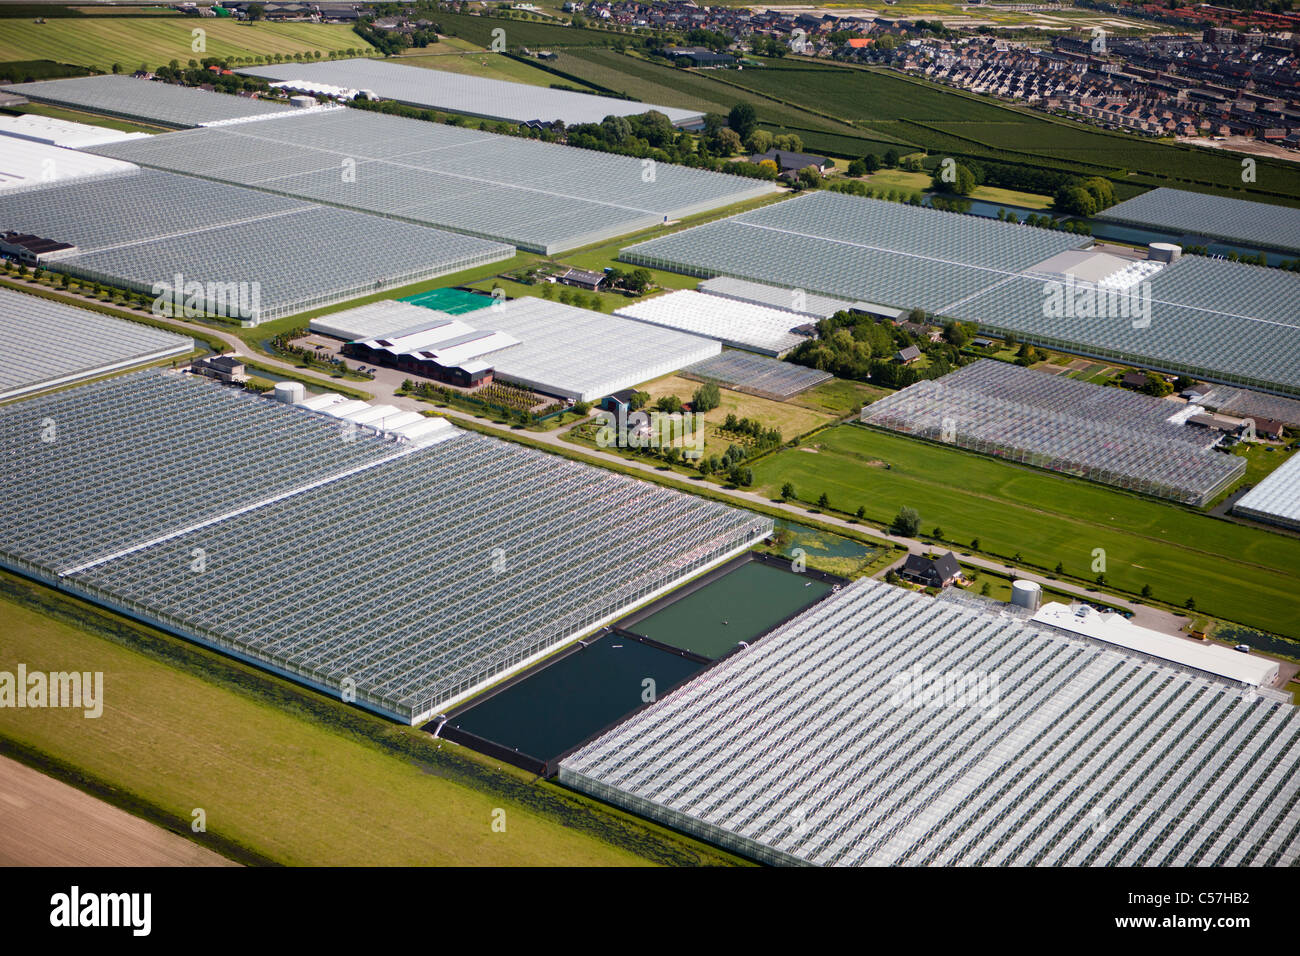 The Netherlands, Utrecht, Greenhouses. Aerial. - Stock Image